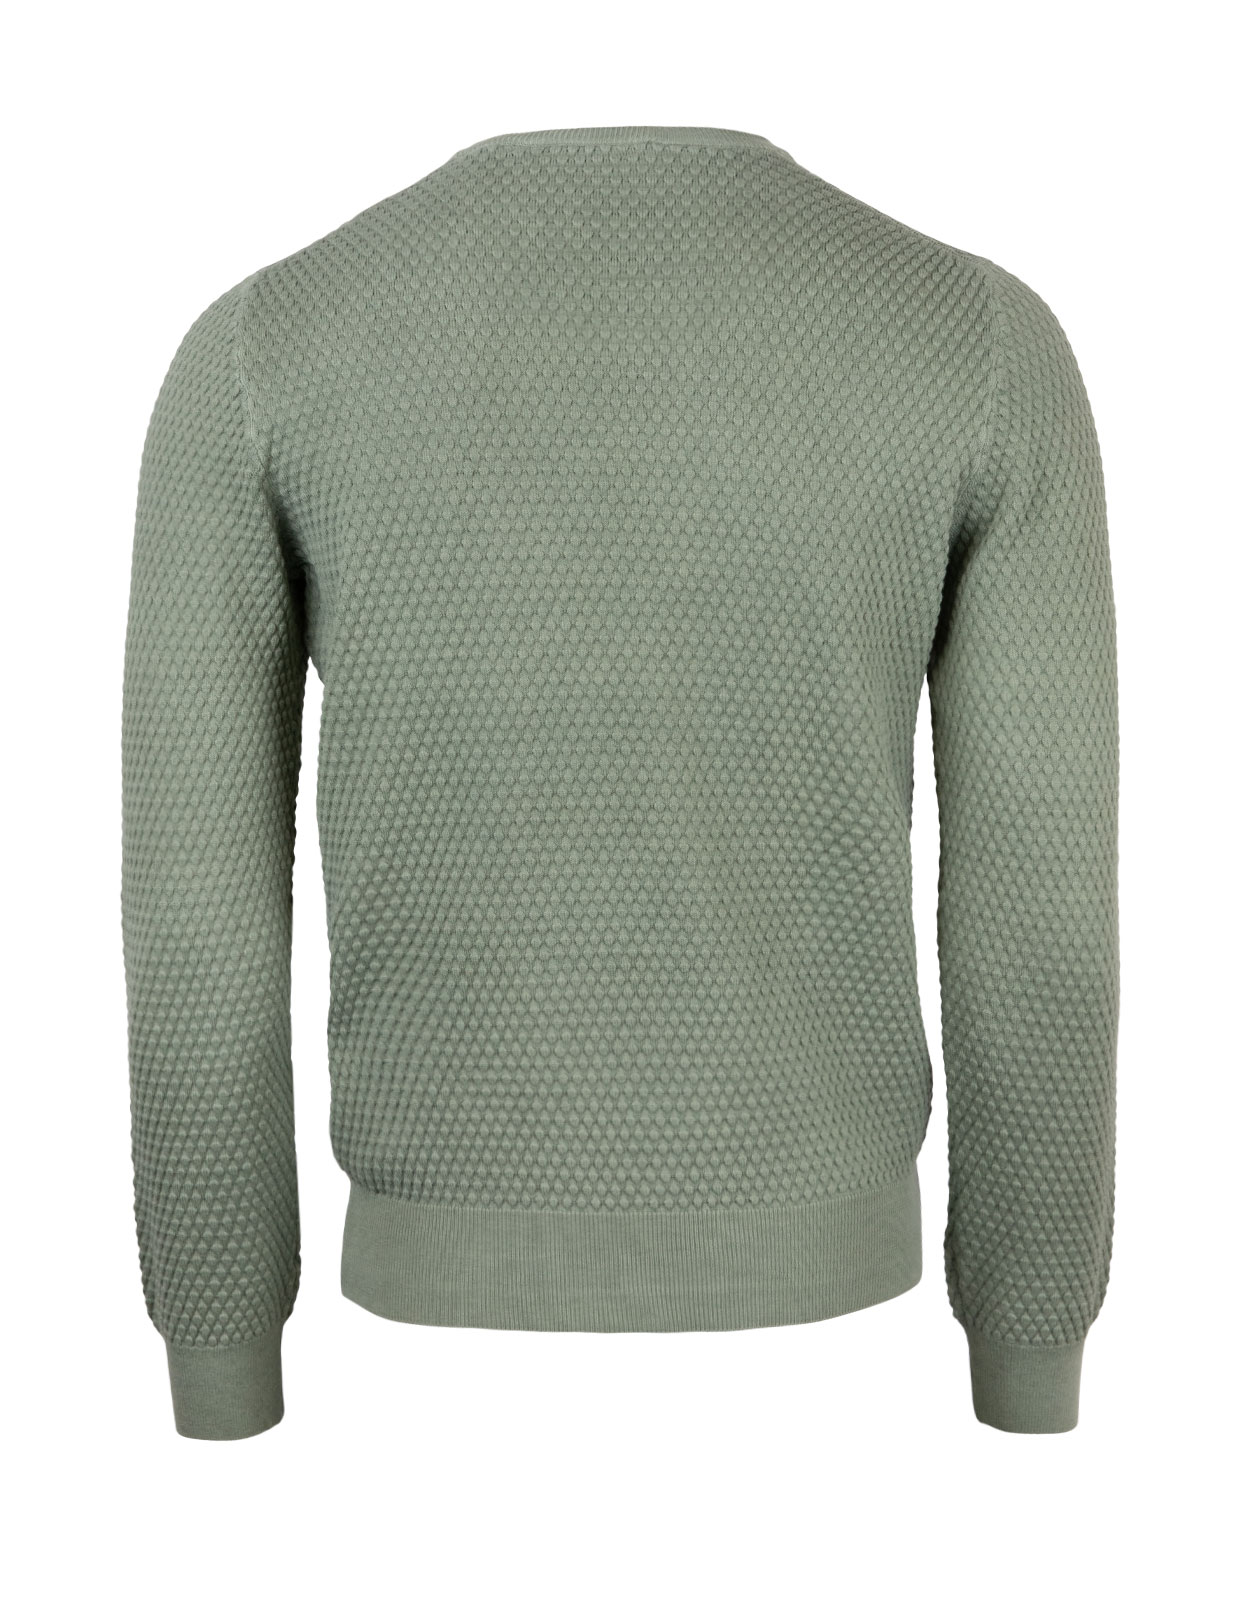 Crew Neck Knitted Texture Cotton Olive